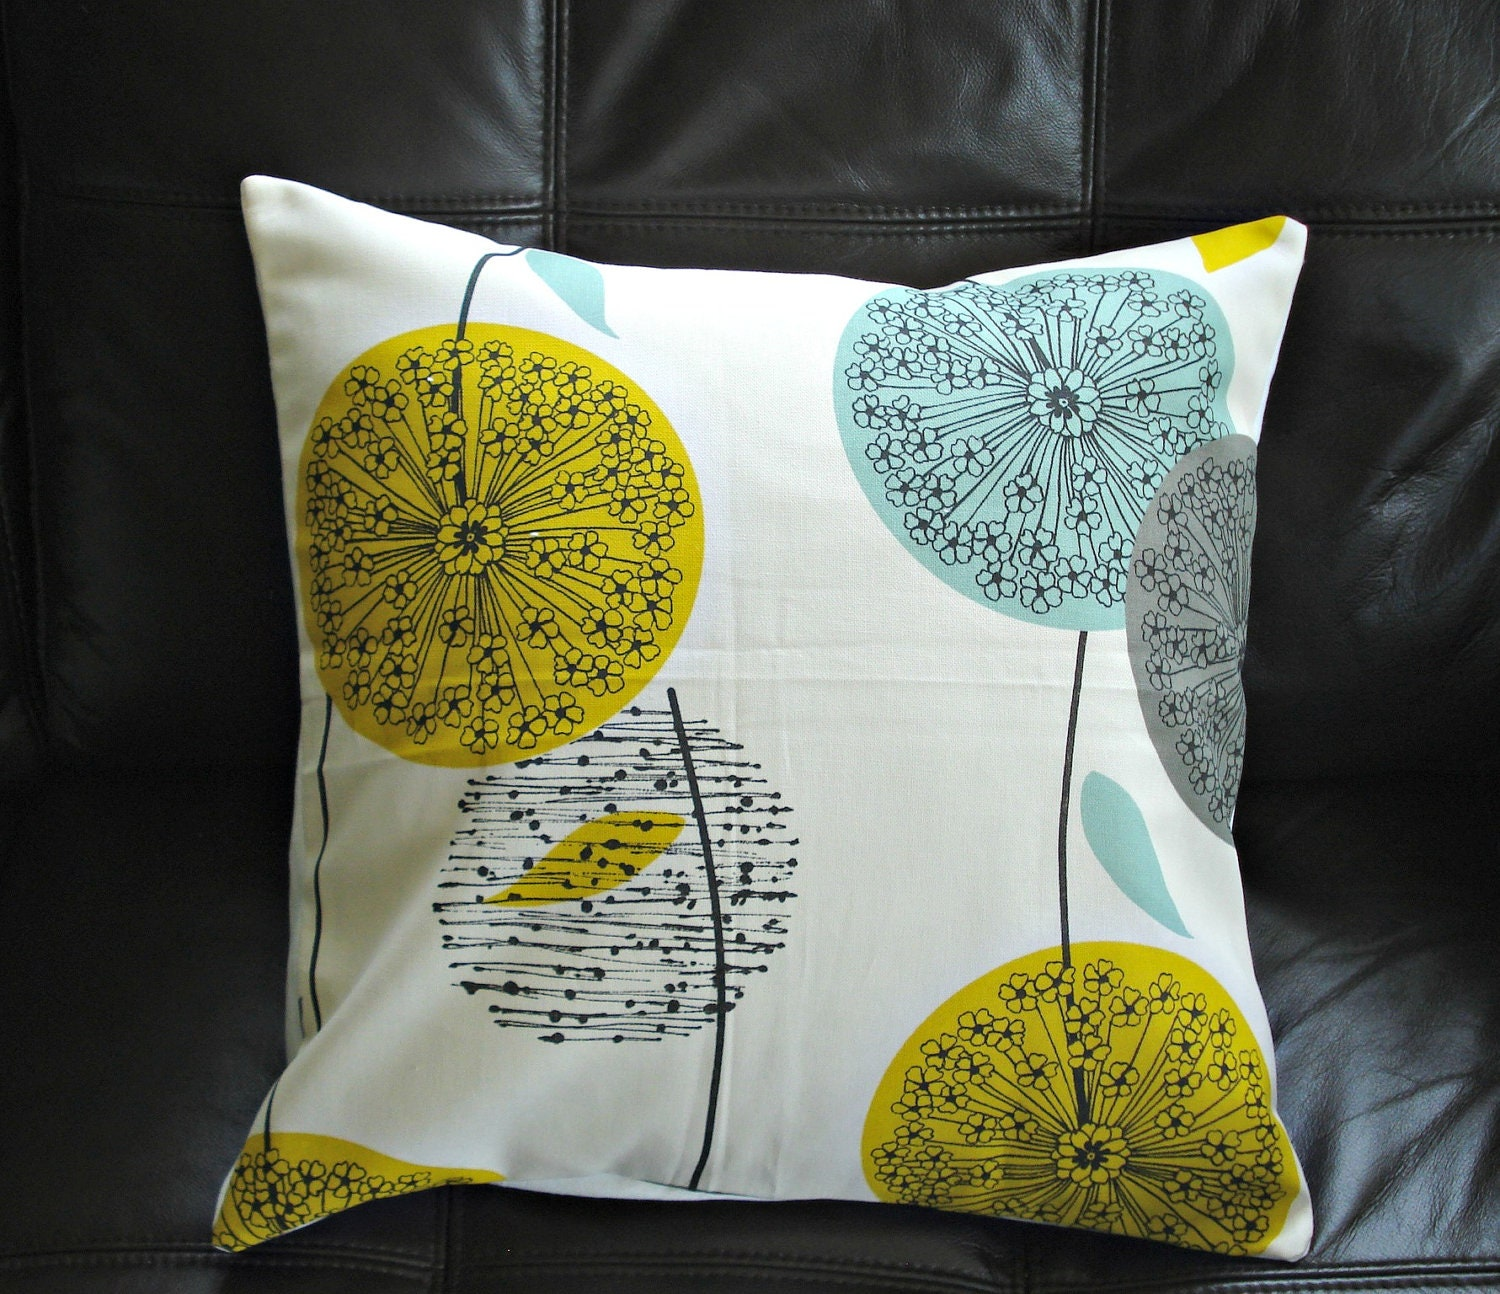 Decorative pillows teal mustard yellow dandelion blue by VeeDubz